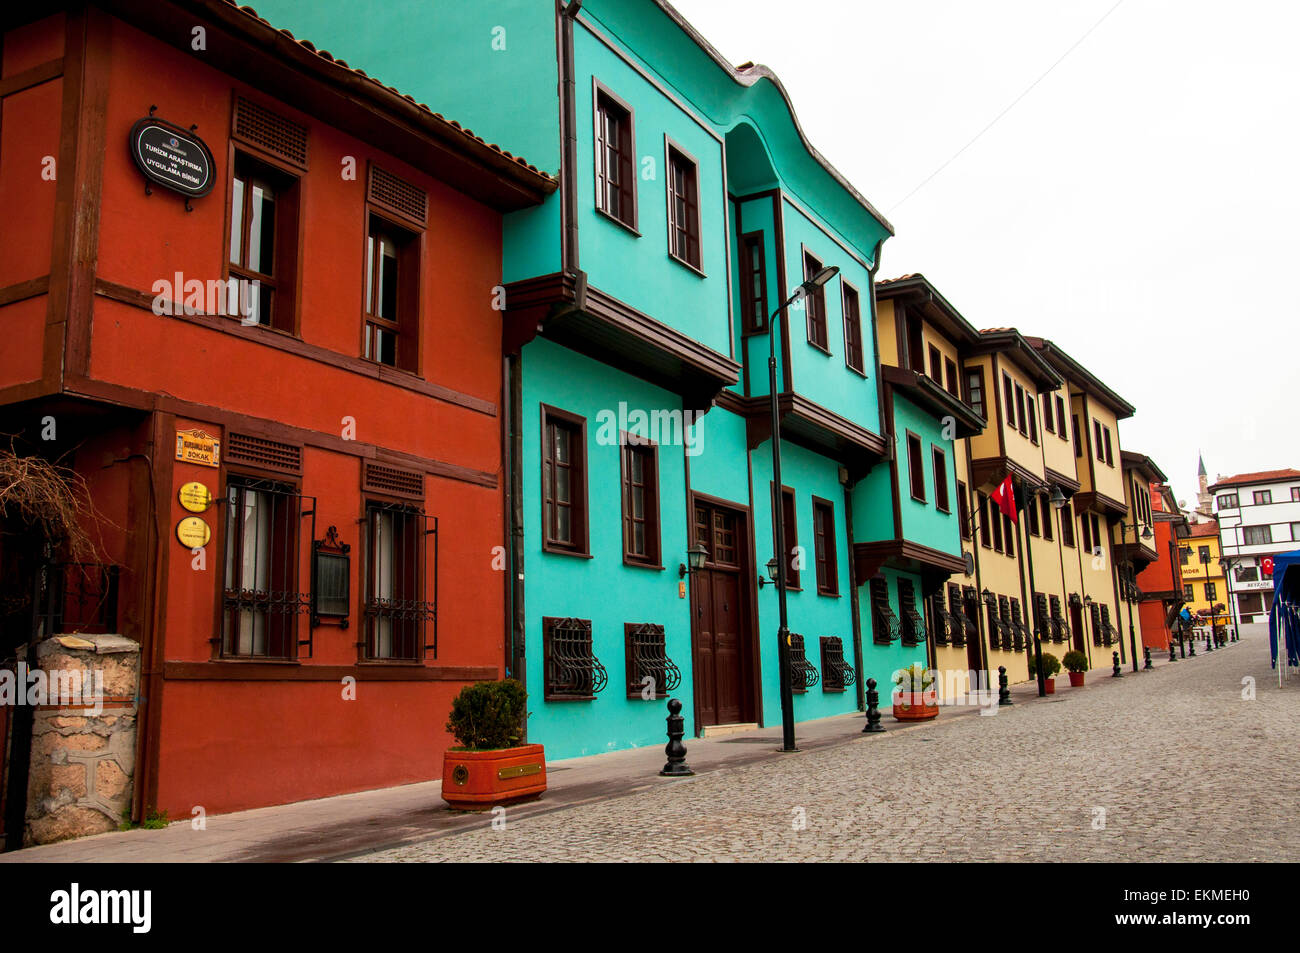 Old historical Turkish Houses - Stock Image